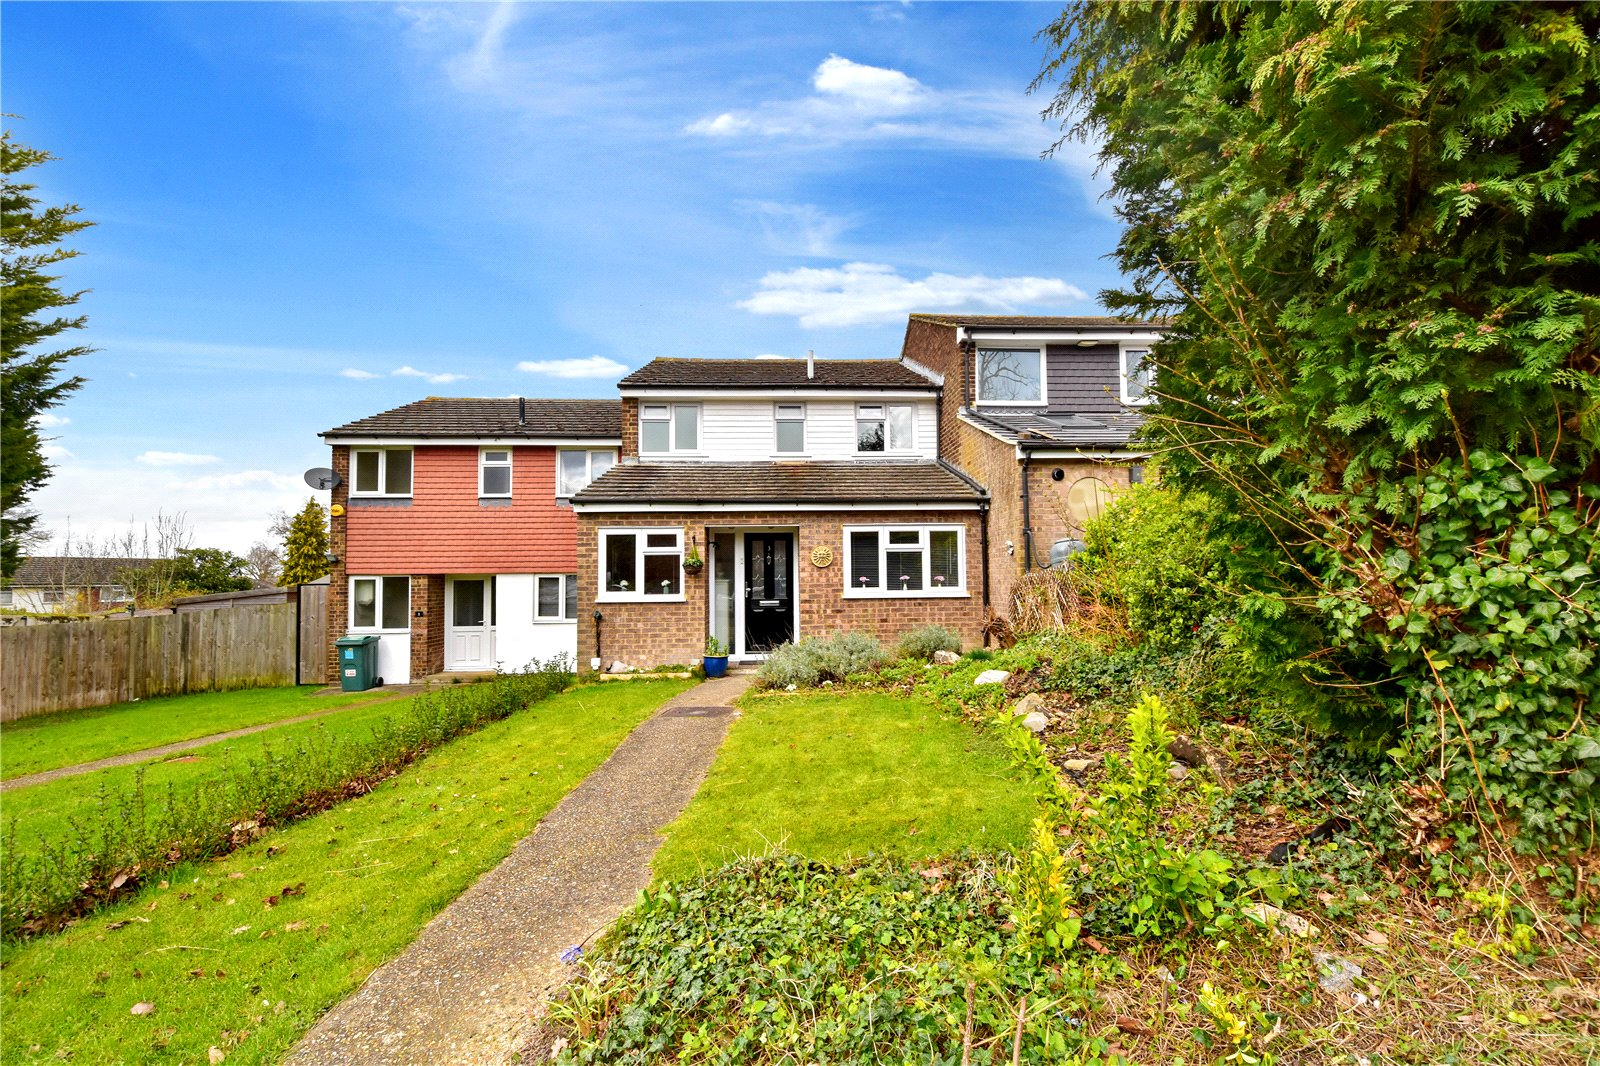 Towers Wood, South Darenth, Dartford, DA4